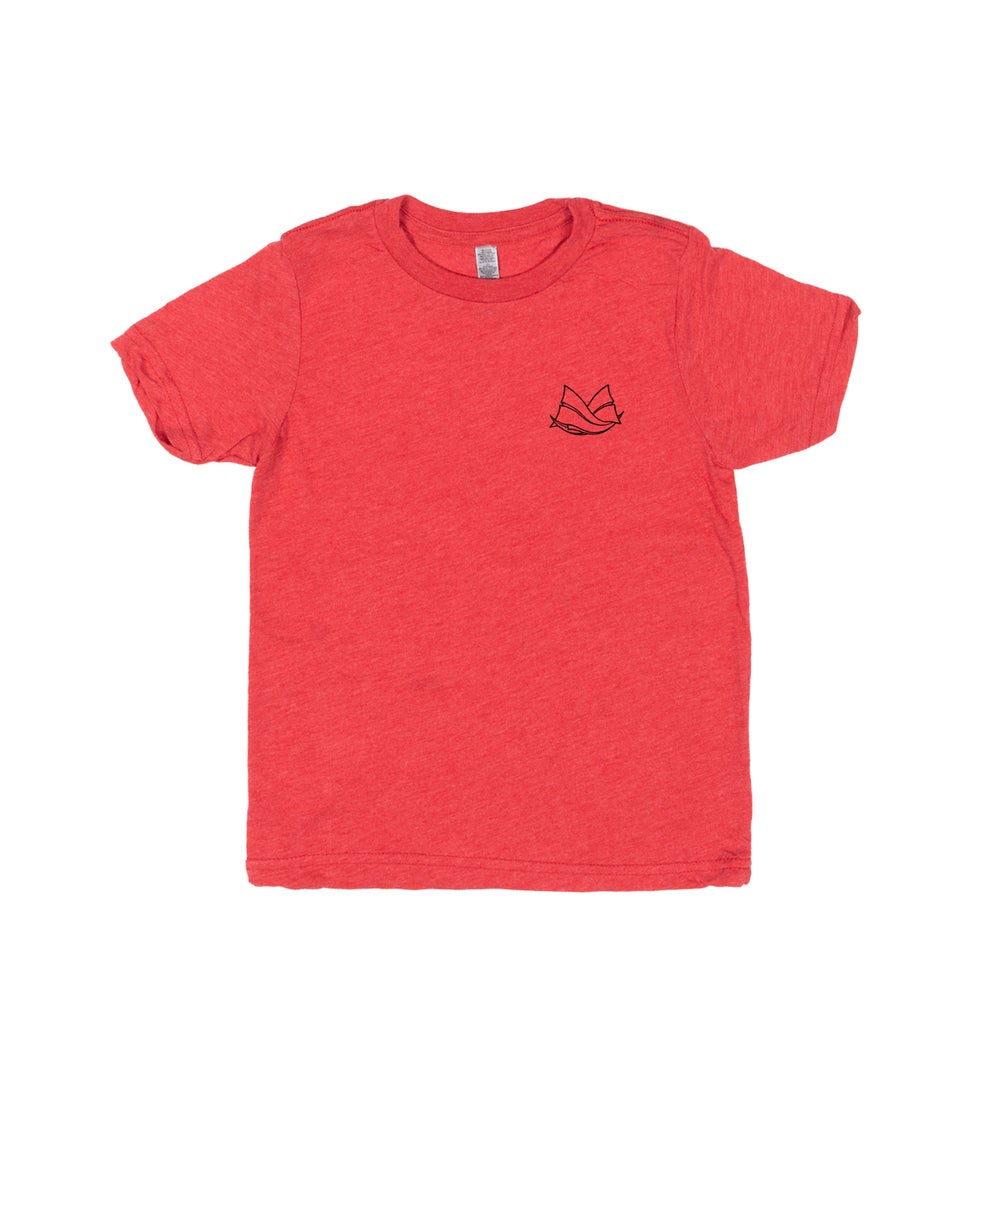 Image of Avive_Planes Kids tee